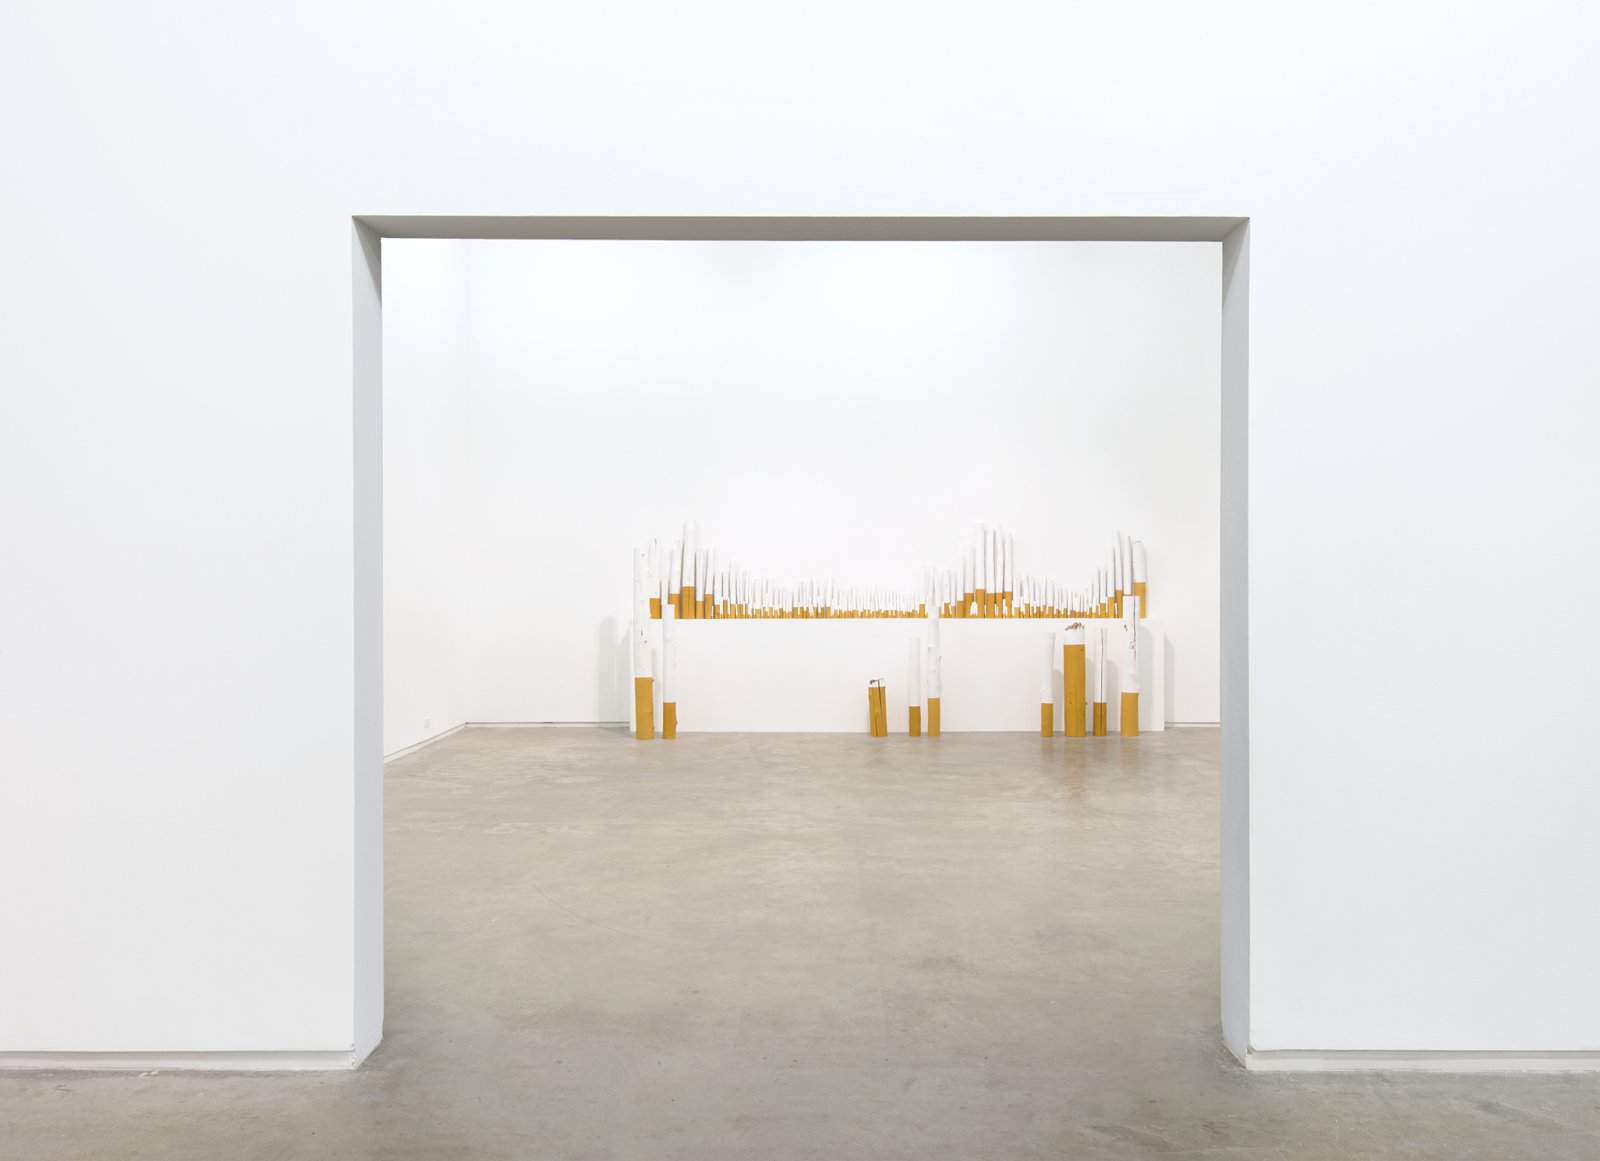 Liz Magor, The Rules, 2012, wood, paint, 38 x 180 x 10 in. (97 x 457 x 25 cm) by Liz Magor